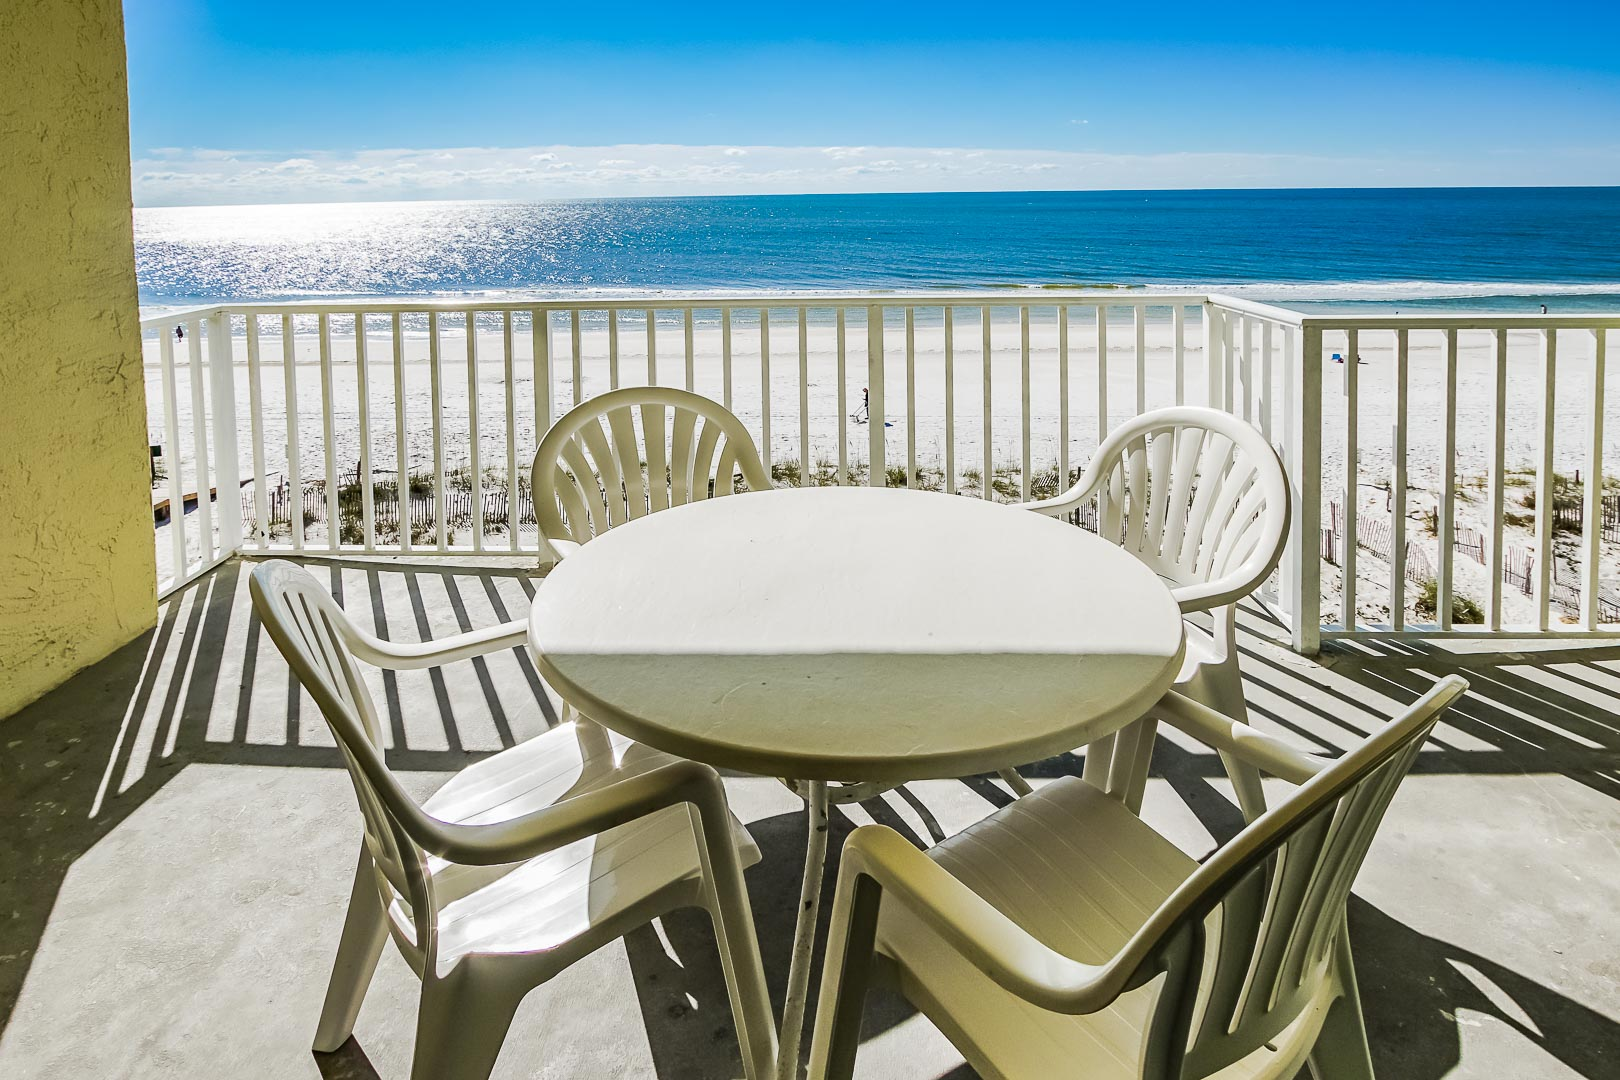 A beautiful view of the beach from the balcony at VRI's Shoreline Towers in Gulf Shores, Alabama.